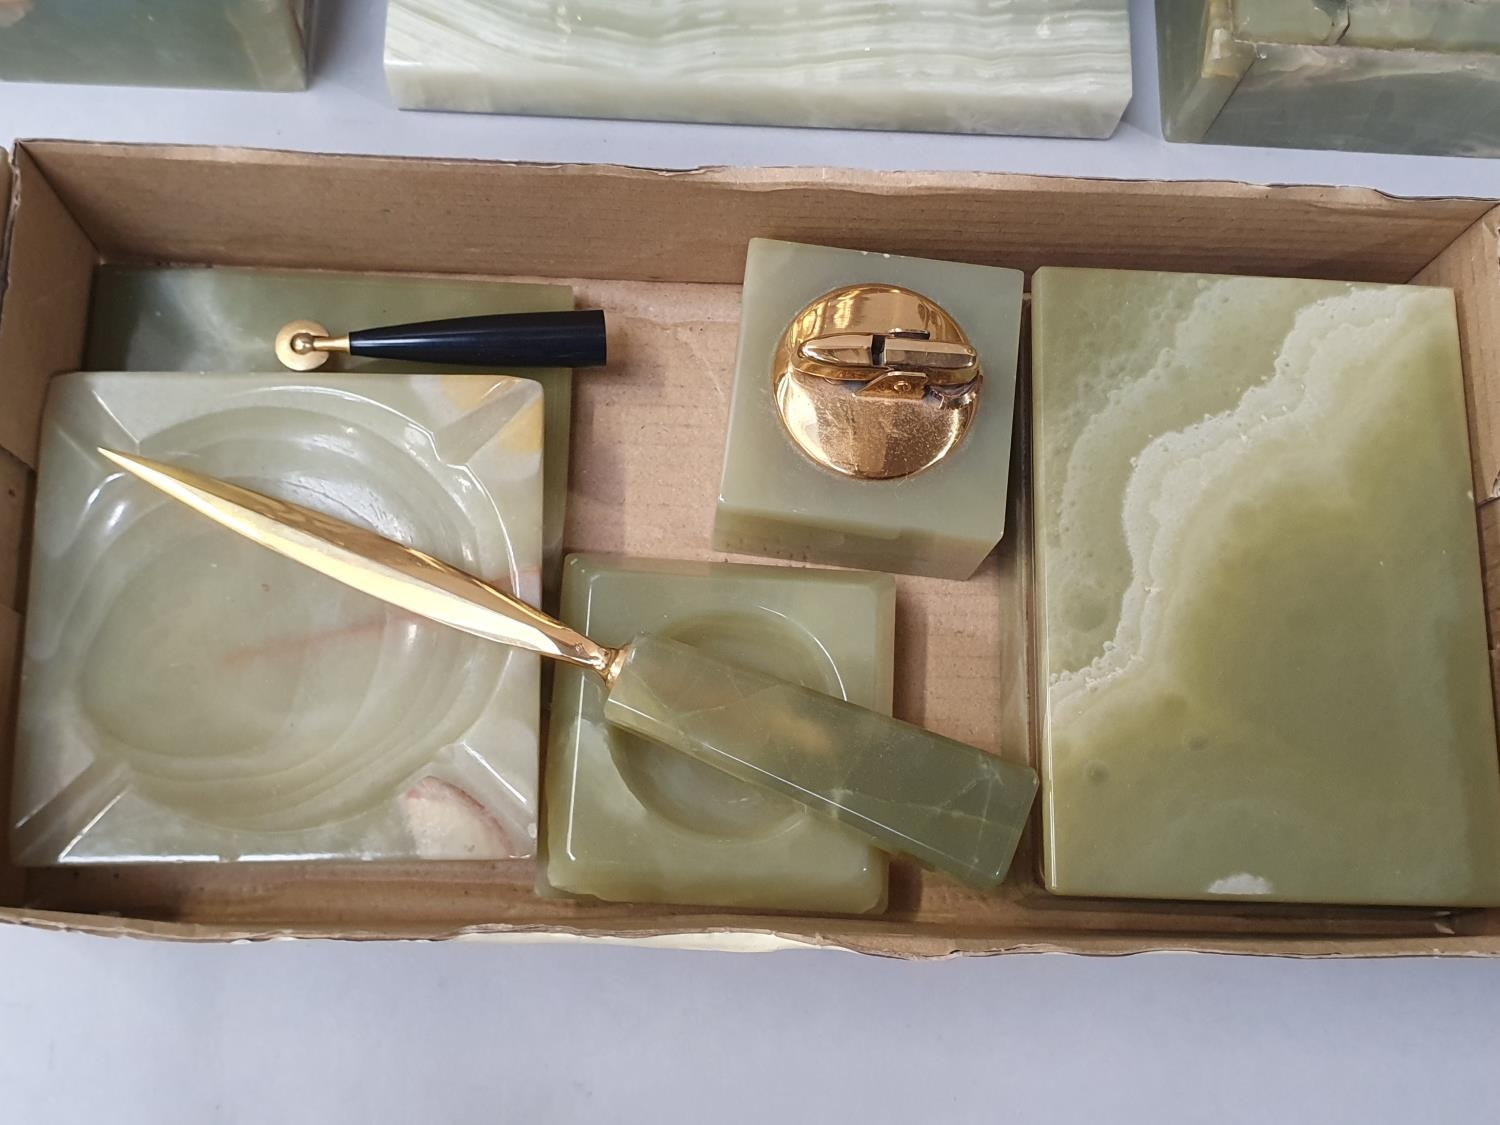 Collection of onyx items including garnitures. - Image 2 of 4